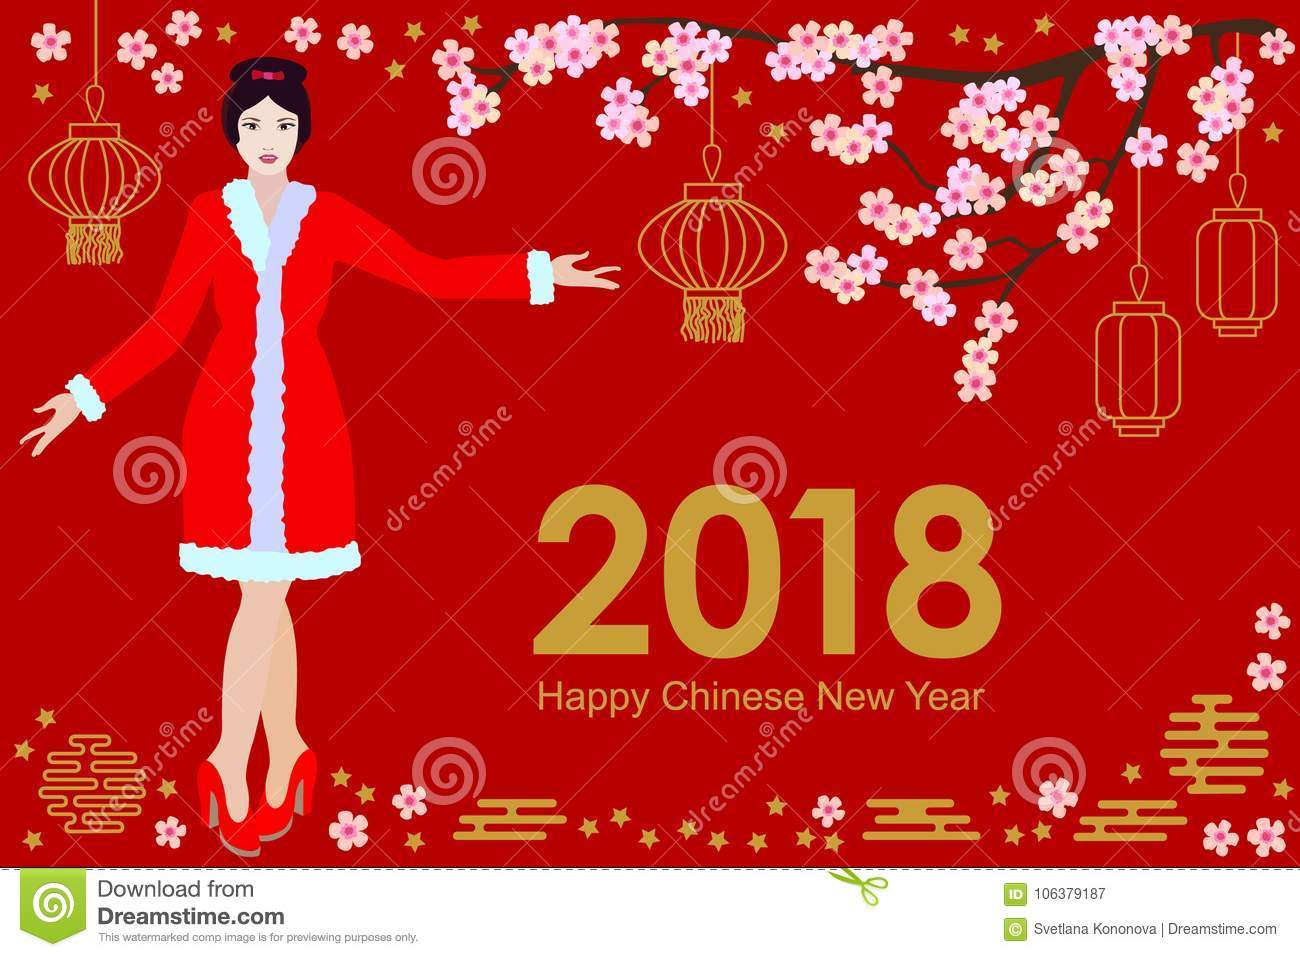 Happy Chinese New Year Card Beautiful Asian Girl In Festive Dress